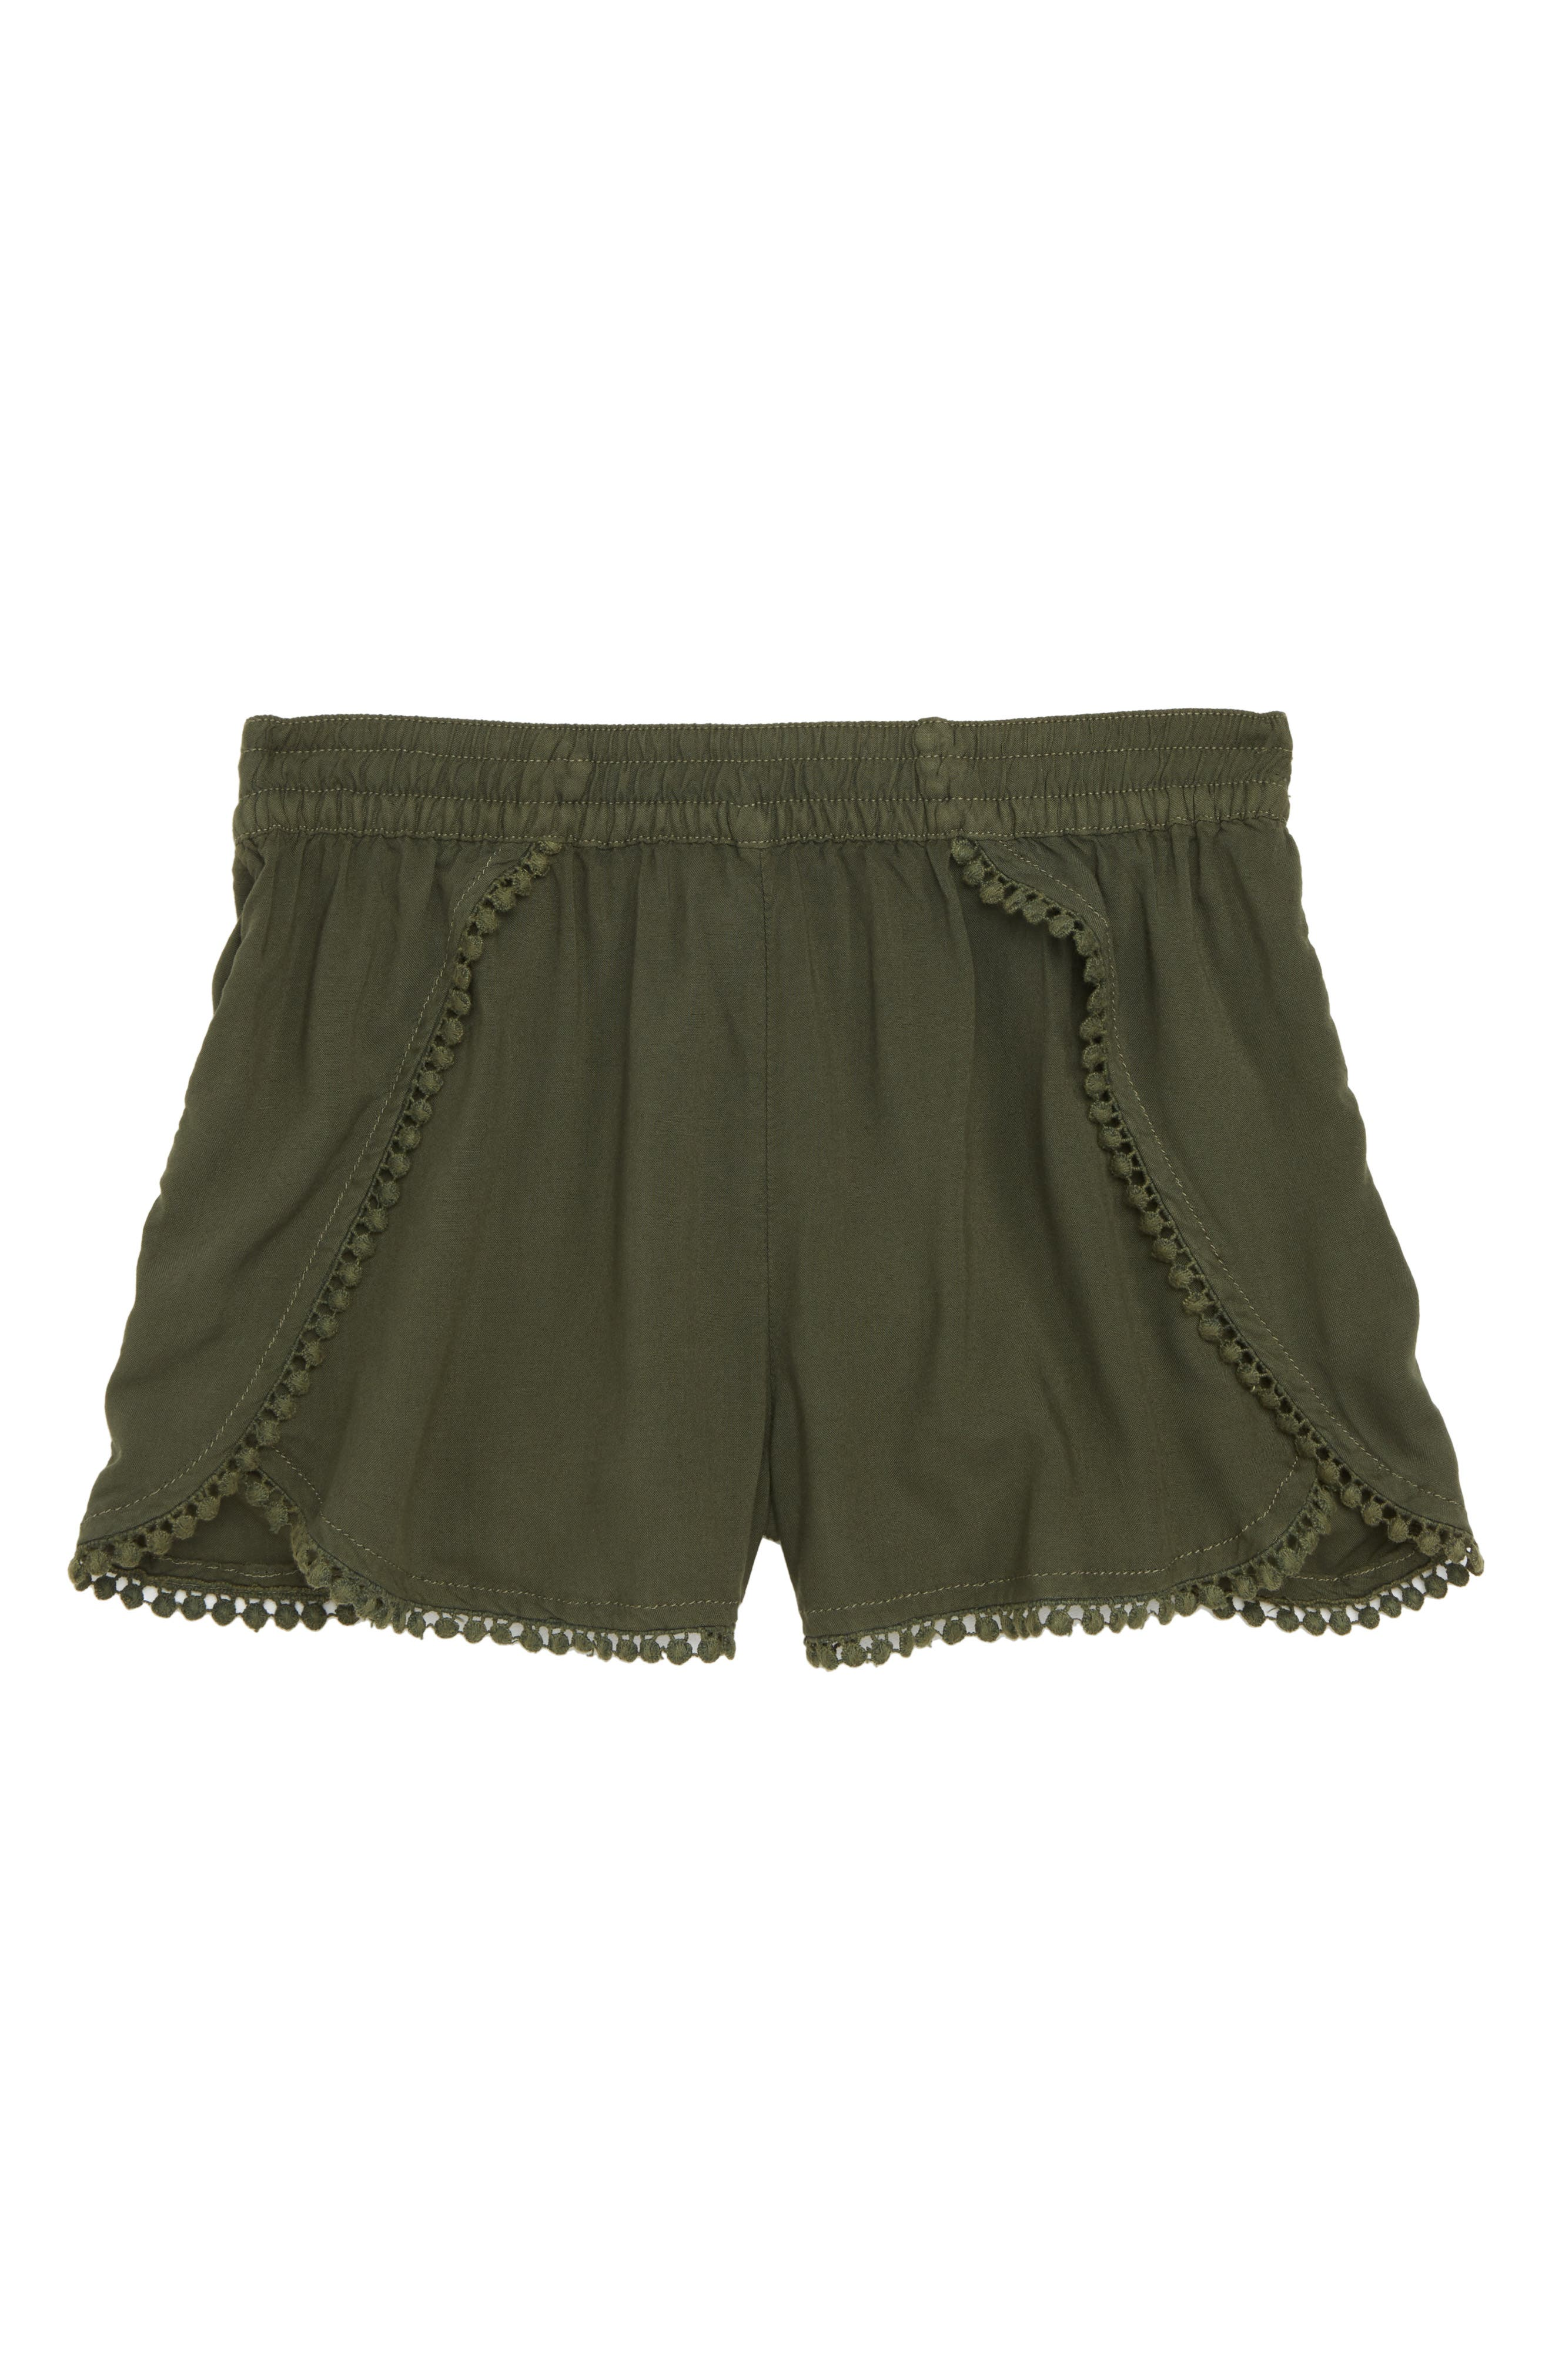 Petal Shorts,                             Main thumbnail 1, color,                             311